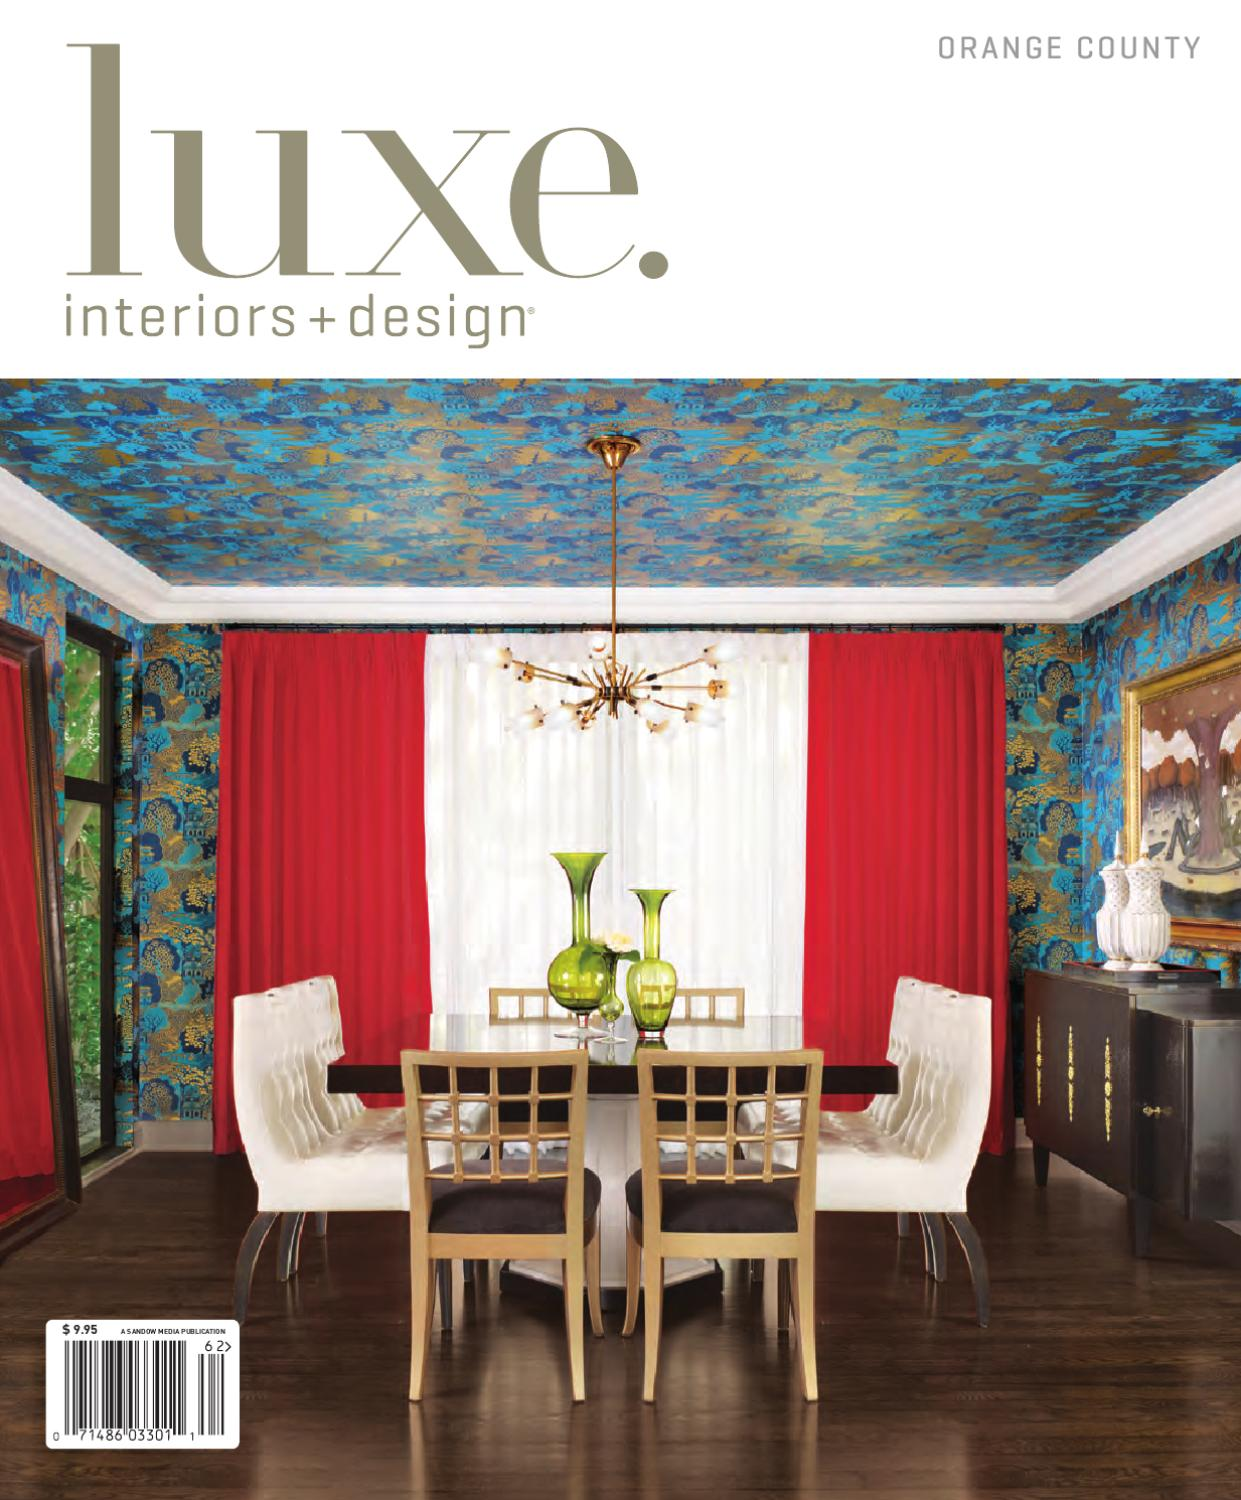 LUXE Interior + Design Orange County By Sandow Media   Issuu